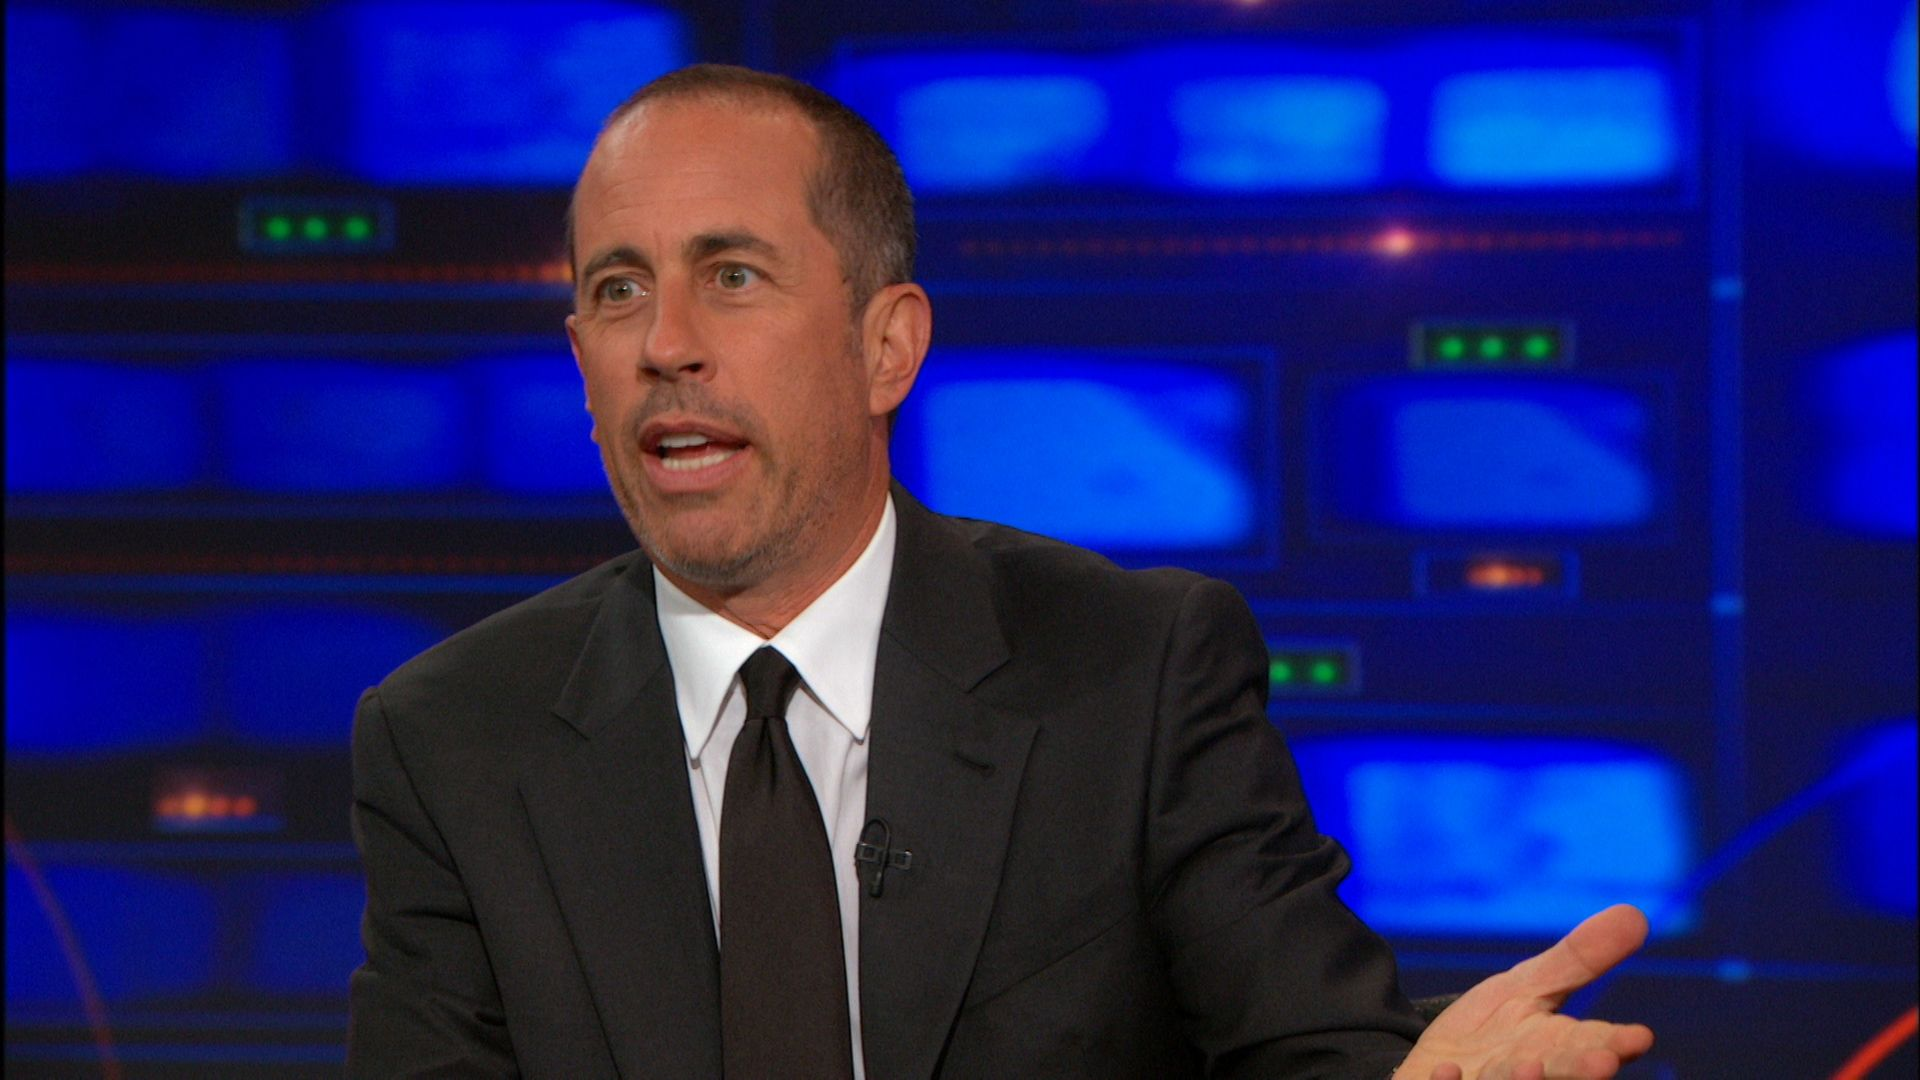 Jerry Seinfeld Bio The Daily Show Comedy Central